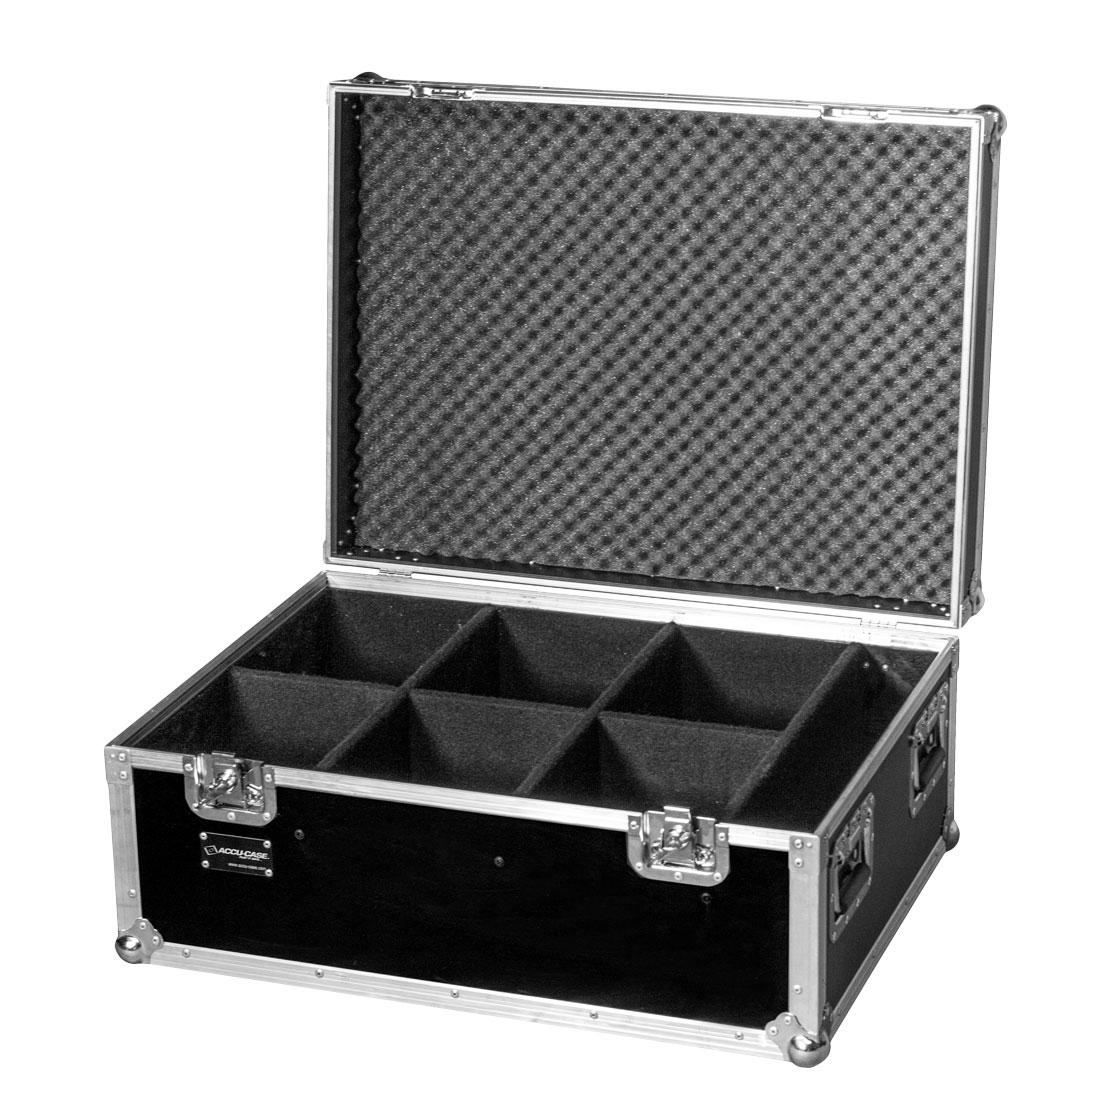 Image of   ADJ Flightcase til 6 x LED PAR lamper